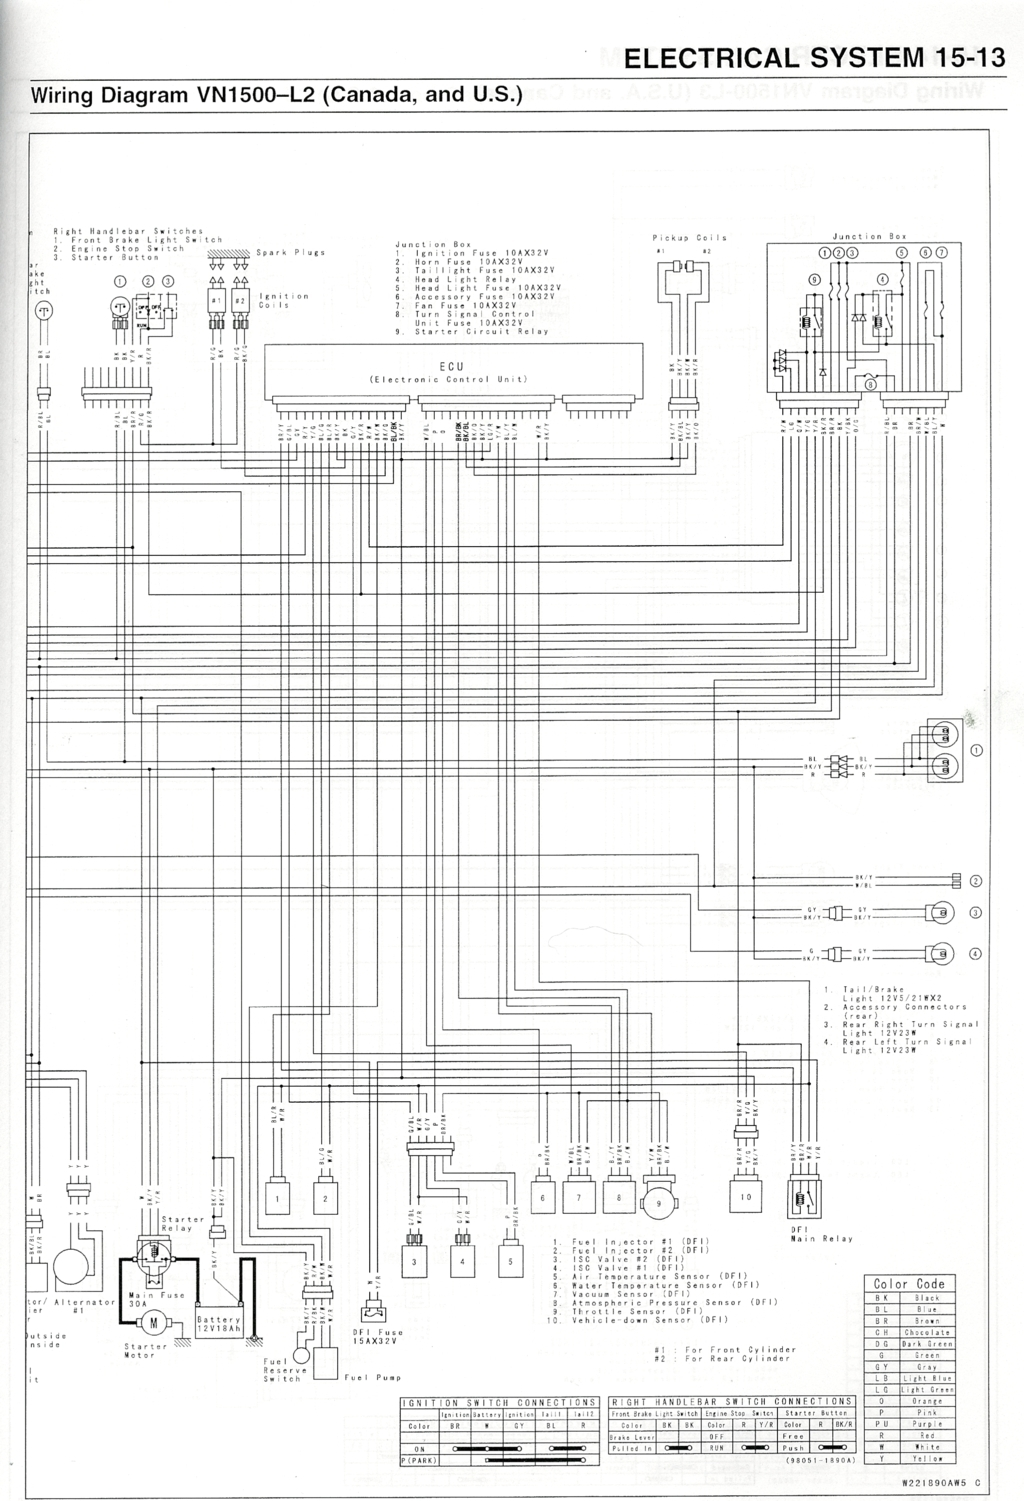 Vn Computer But Not In Carvnefiwiringdiagram Wire Center Wiring Systems Rc109 Tradeselect Single Pole Combination Toggle Switch Vulcan Diagrams Gadget S Fixit Page Rh Gadgetsfixitpage Com